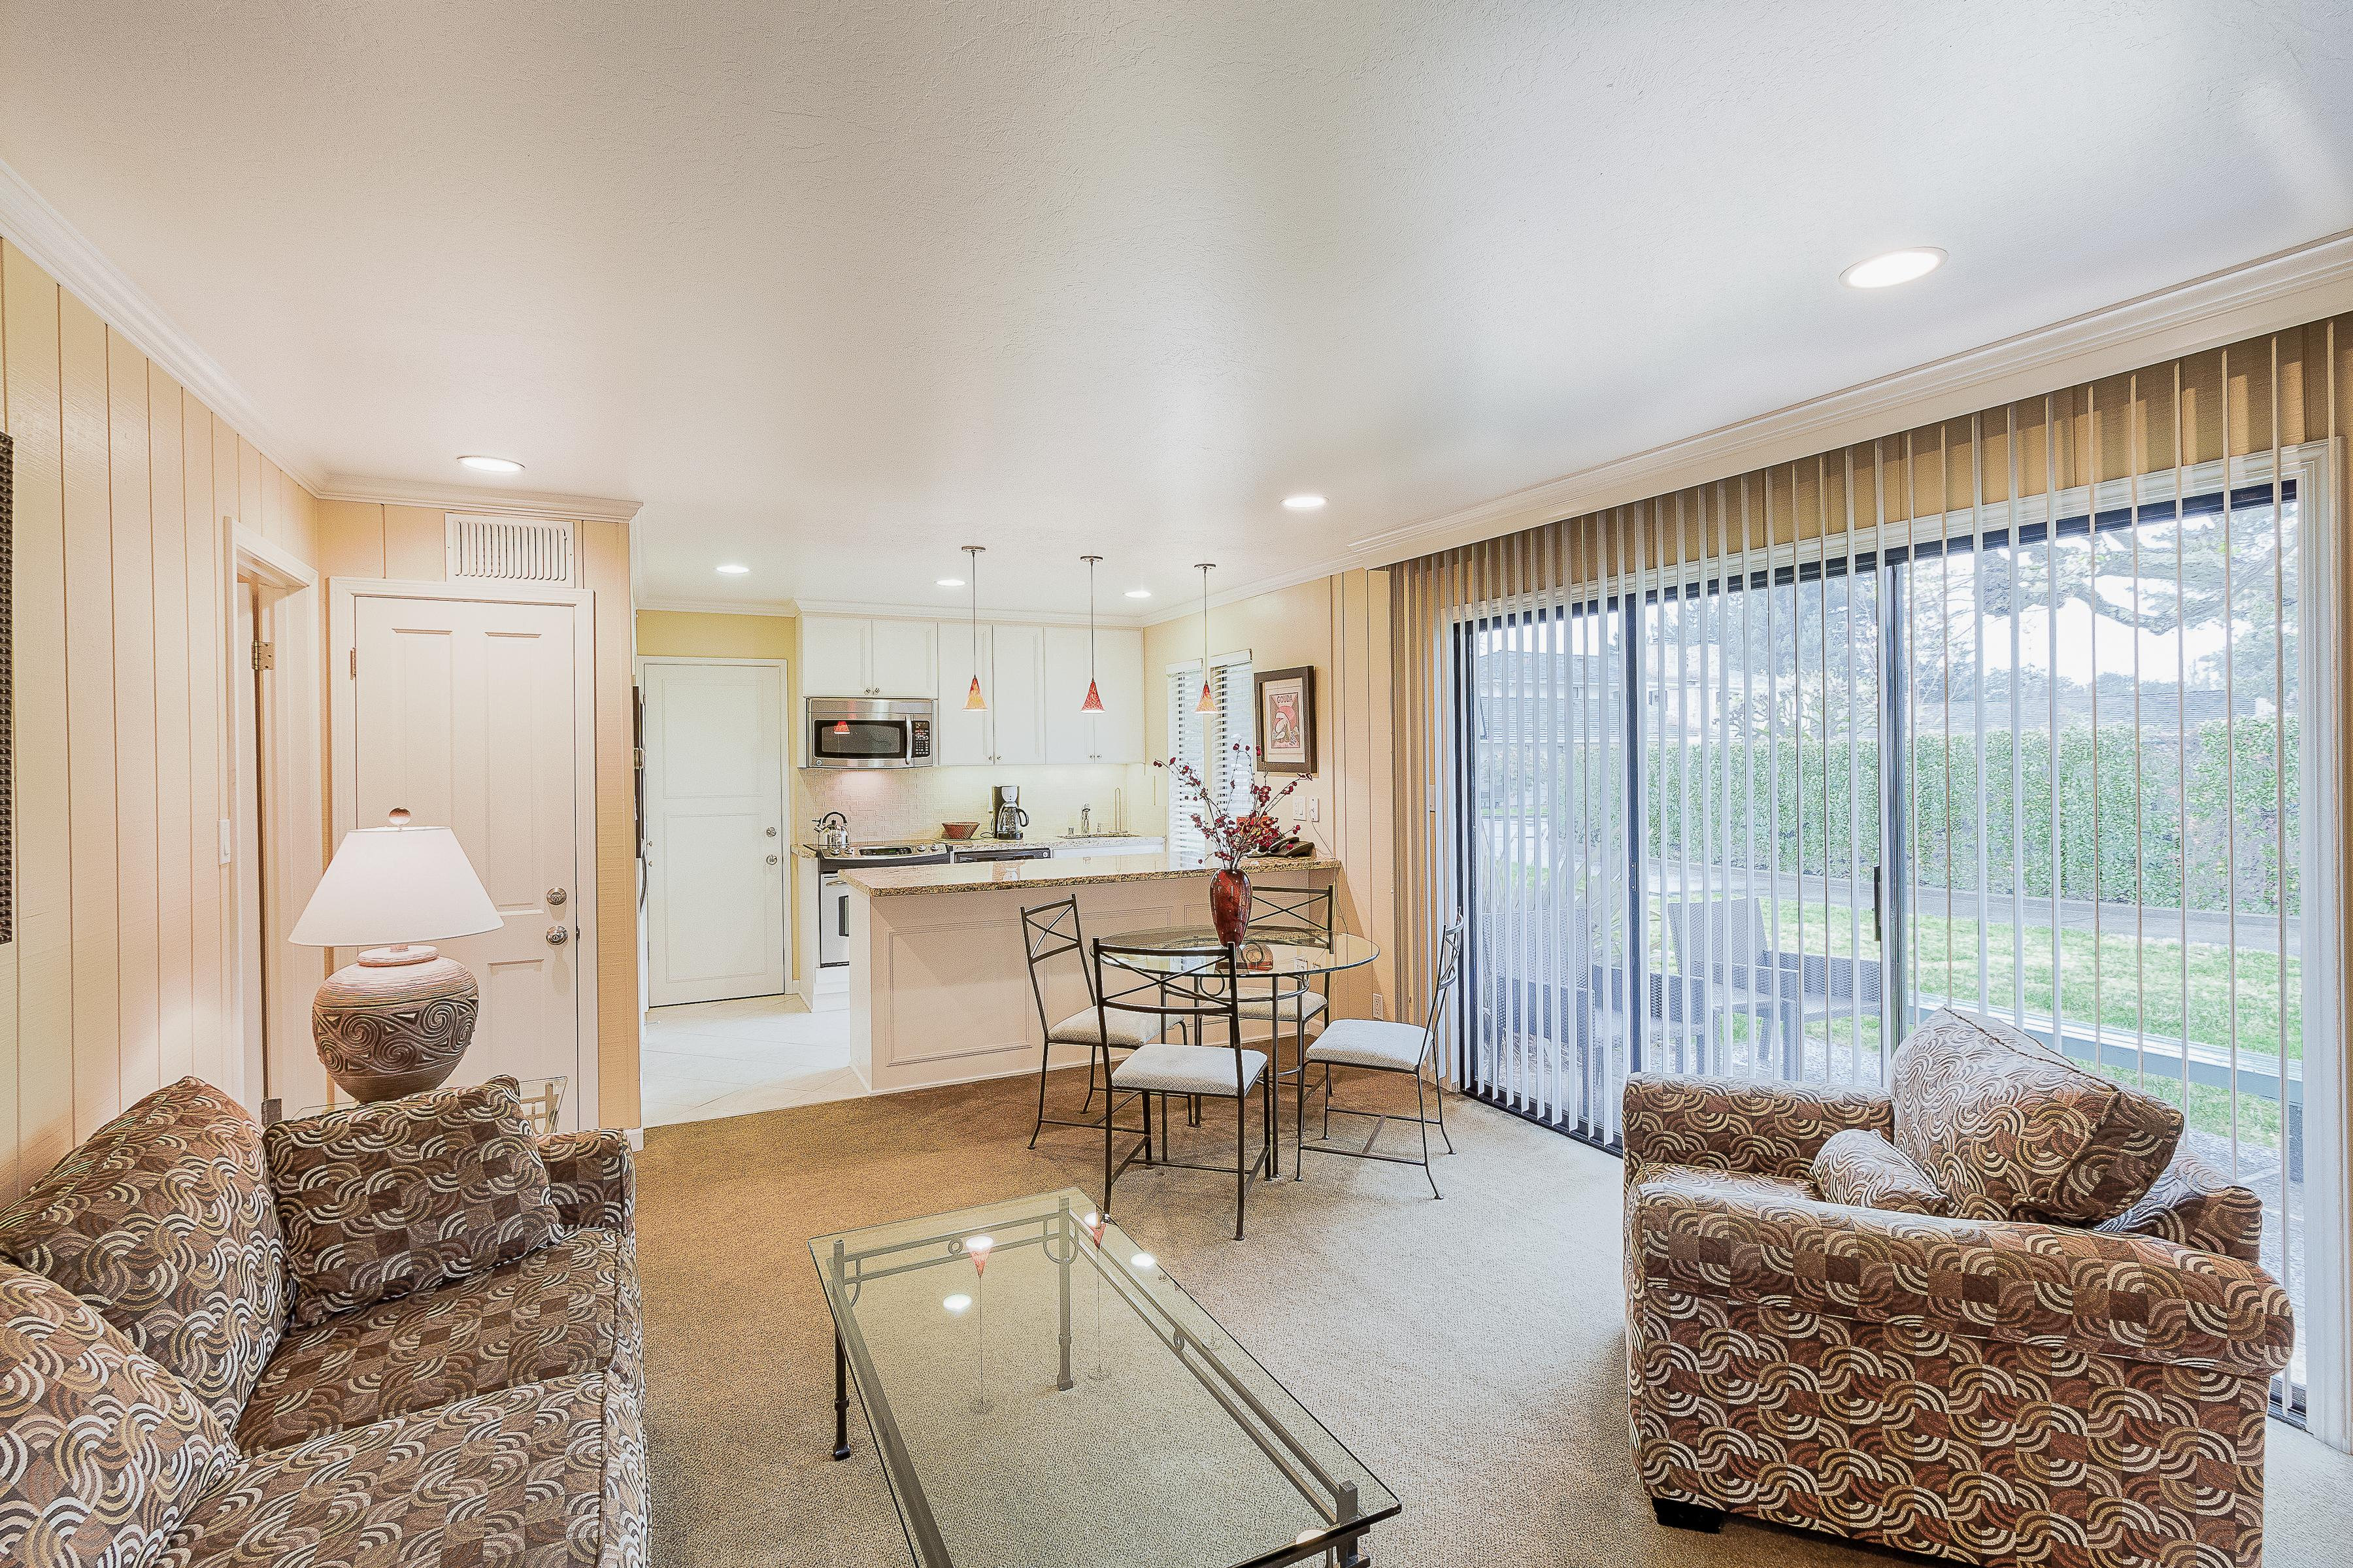 Welcome to Napa! This renovated condo is professionally managed by TurnKey Vacation Rentals.